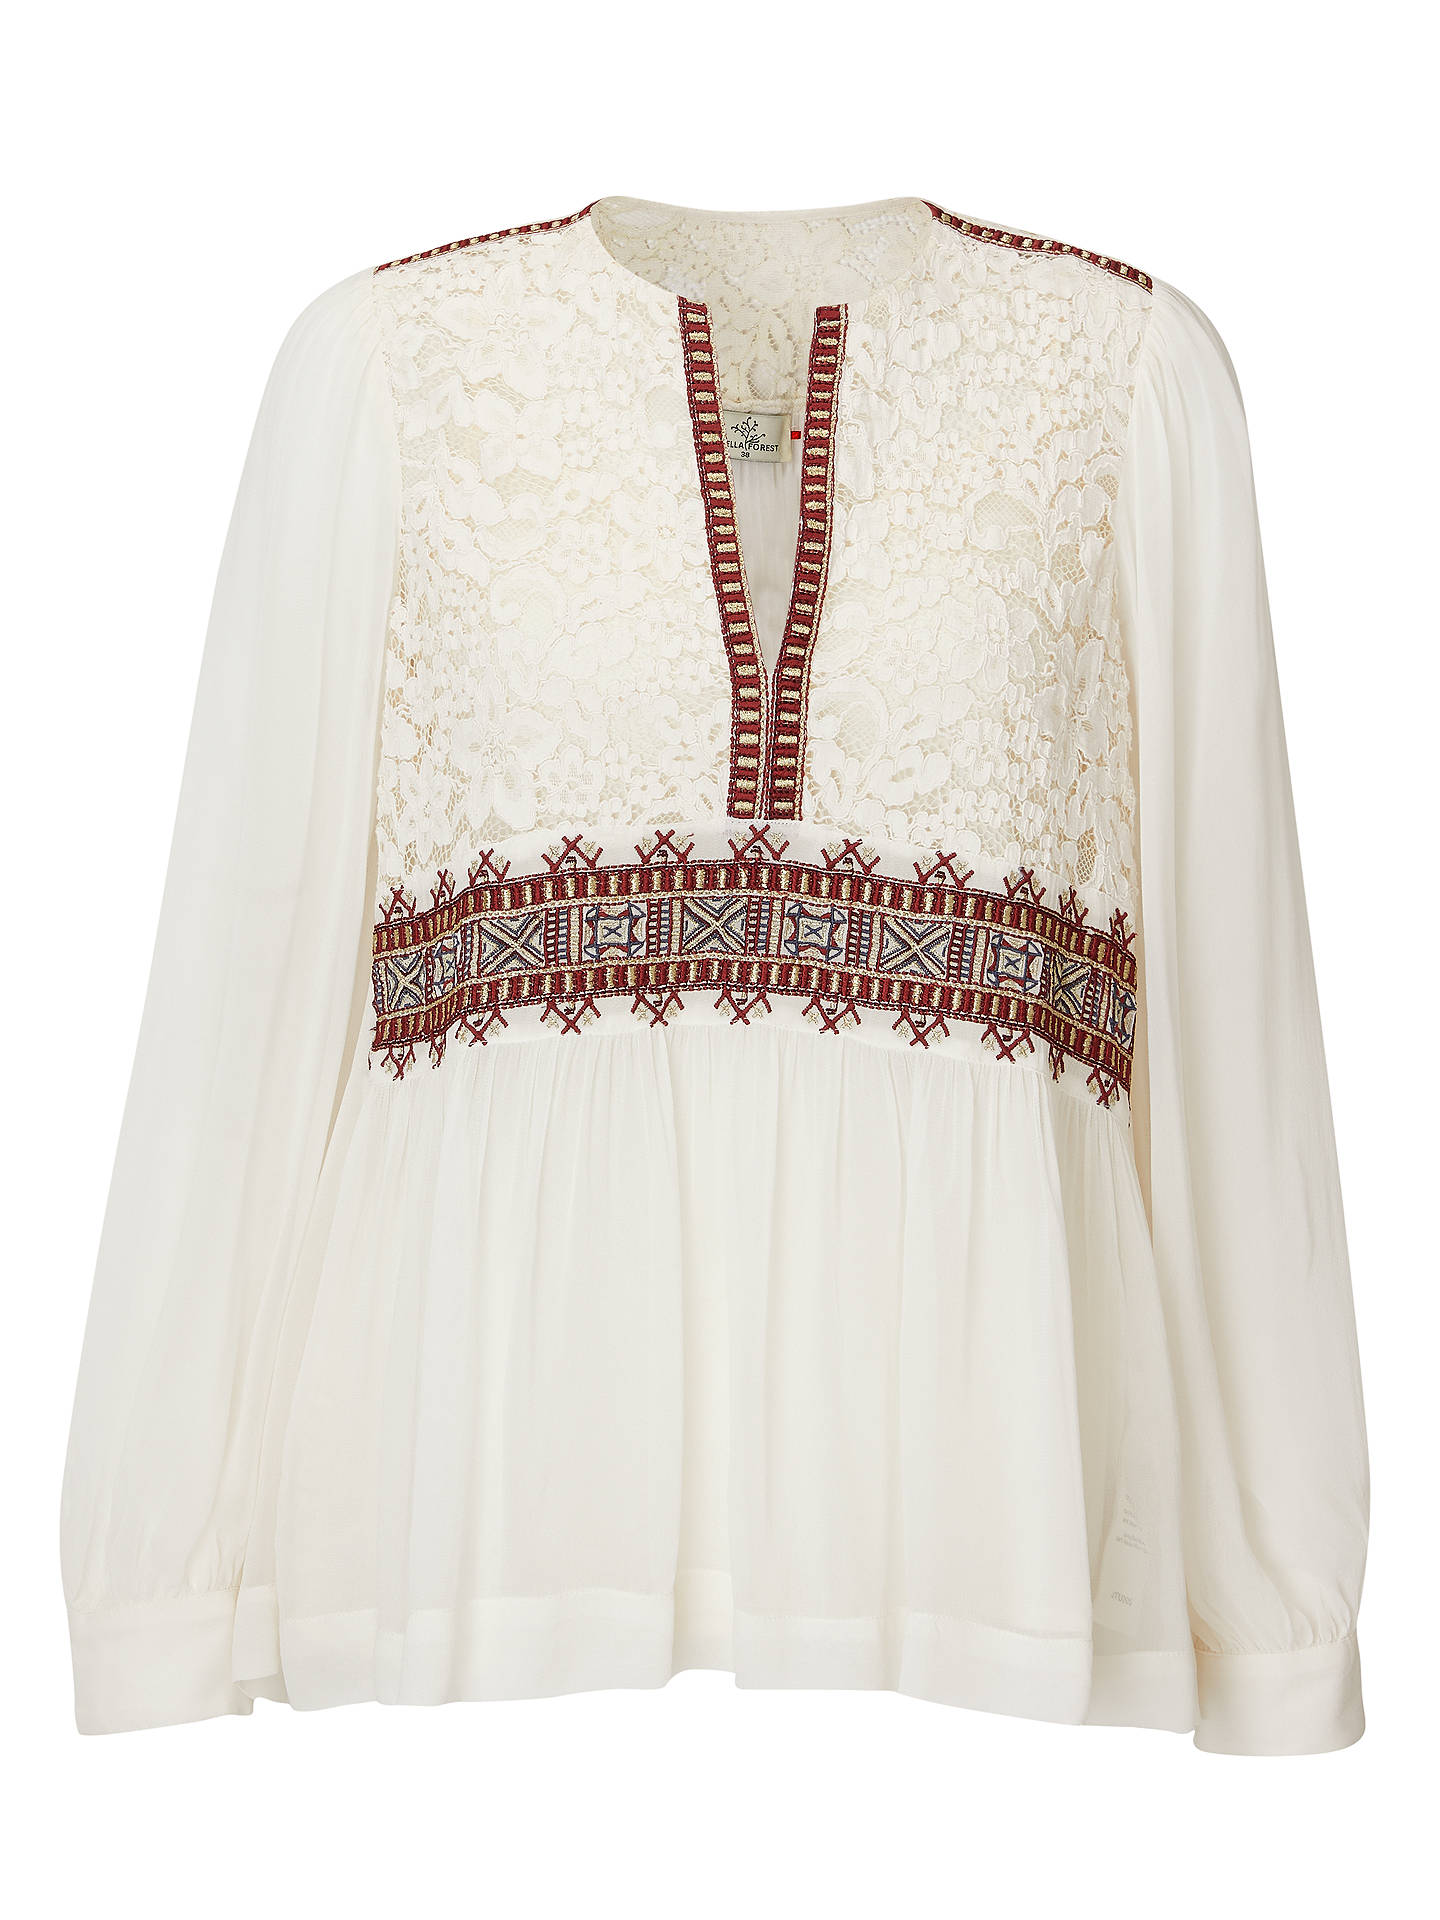 Buy Stella Forest Tonya Lace Trim Top, Ecru, 10 Online at johnlewis.com